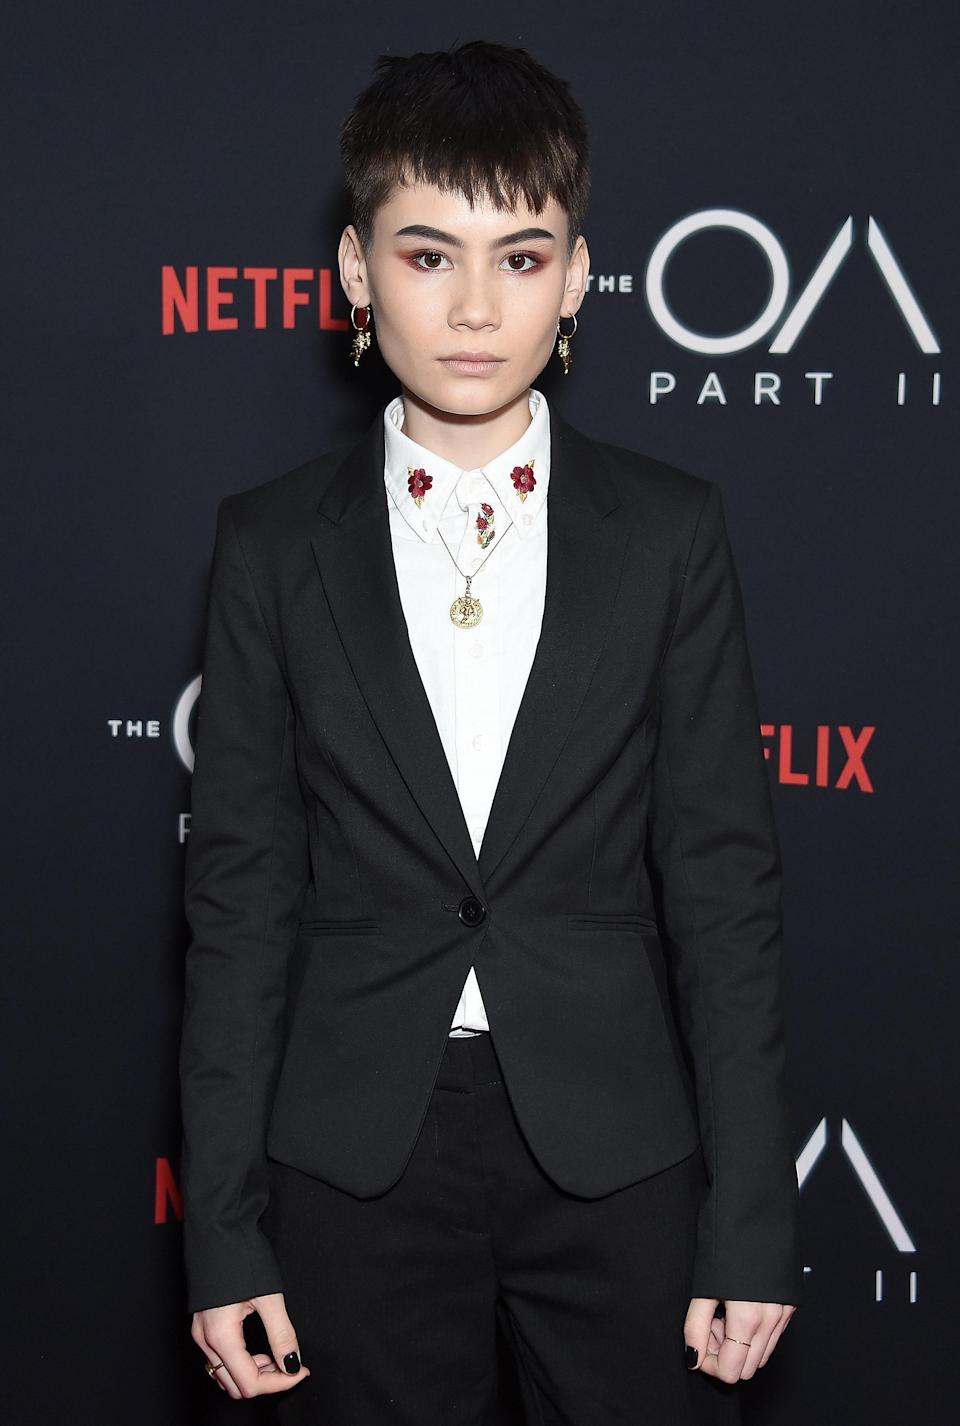 If you've seen <em>The OA</em> on Netflix, you know how talented Ian Alexander (who plays Buck Vu) is. He auditioned for the part on a whim, and though he had no professional acting experience, he landed the role. In addition to being an actor, he's also an outspoken advocate for the transgender community.